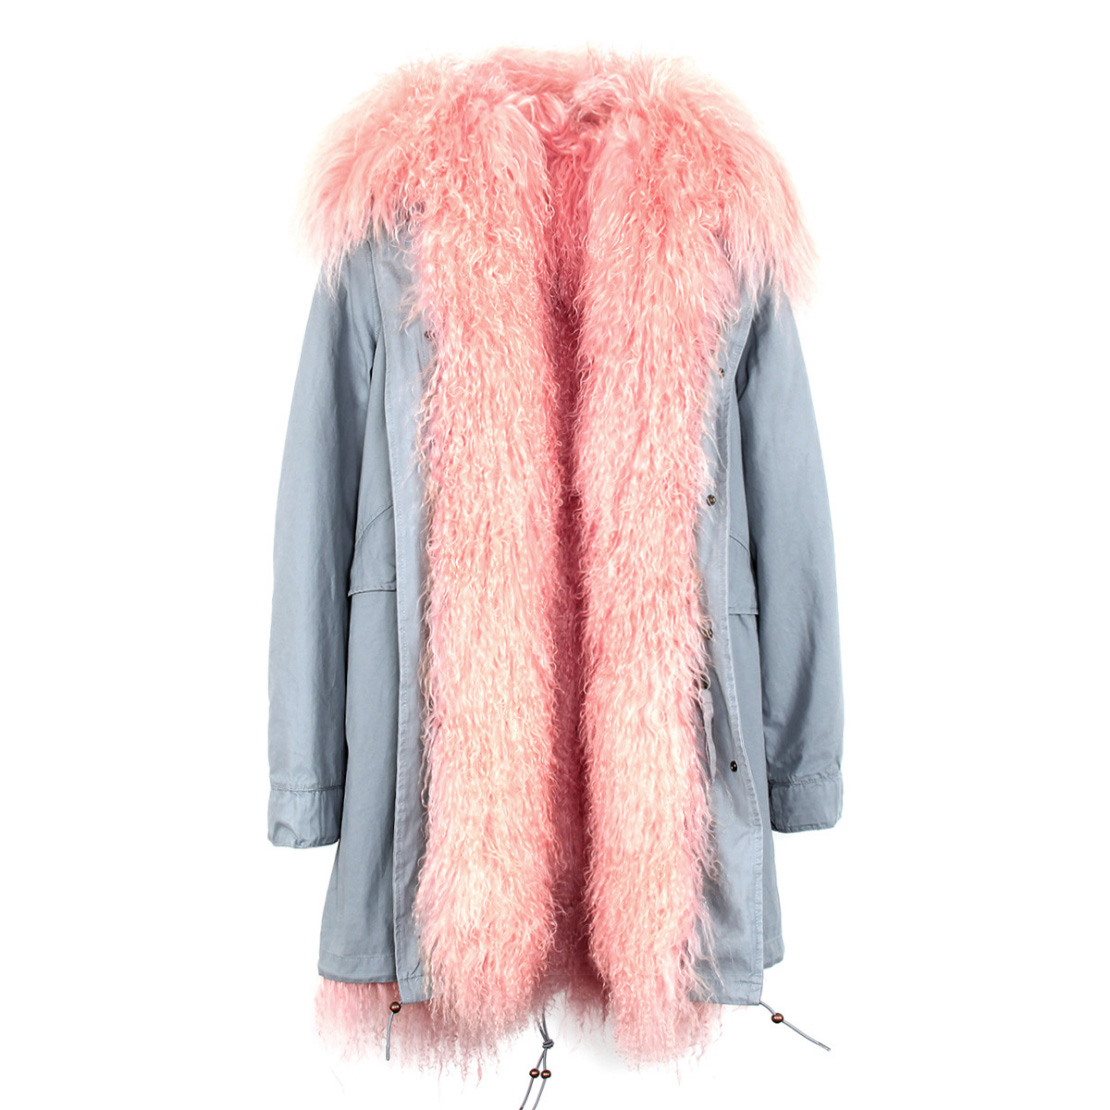 Tibet Sheep Fur Hooded Parka 119 Details 10